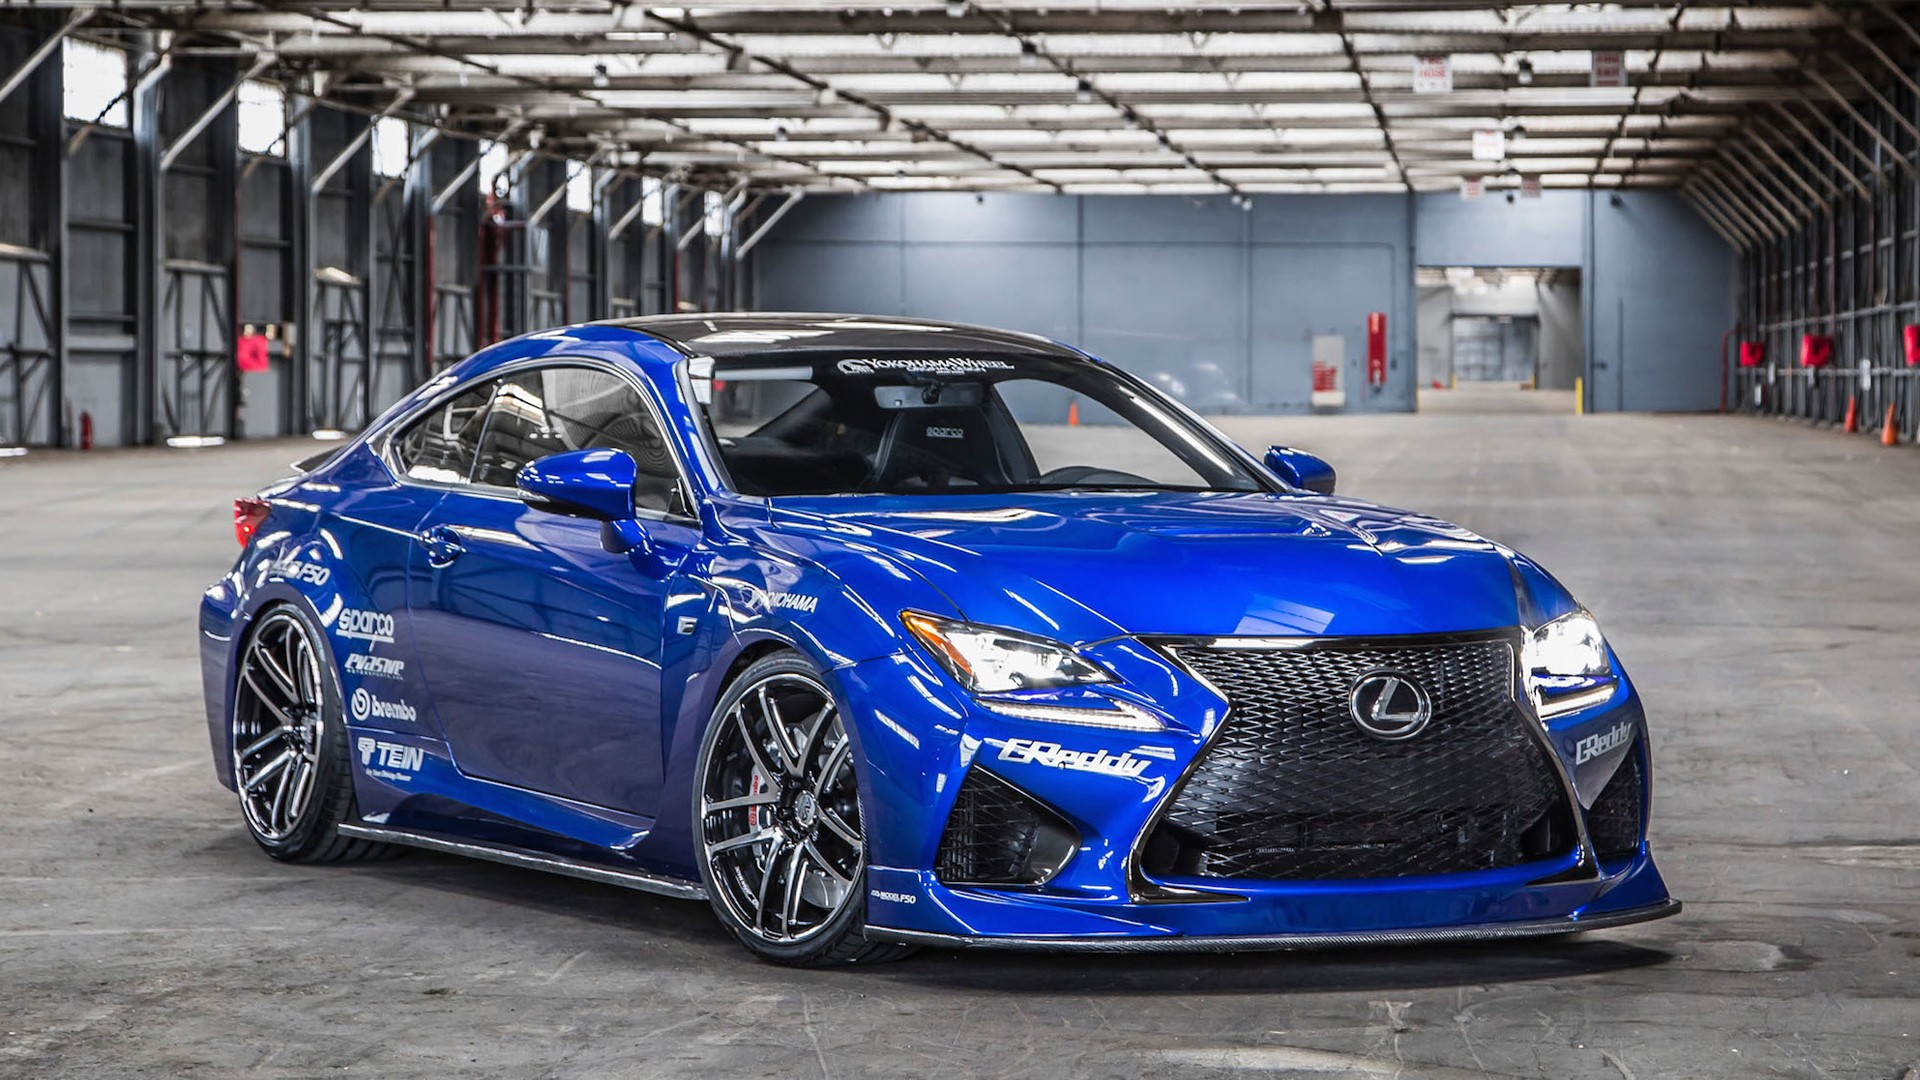 2014 Lexus RC F By Gordon Ting Wallpaper HD Car